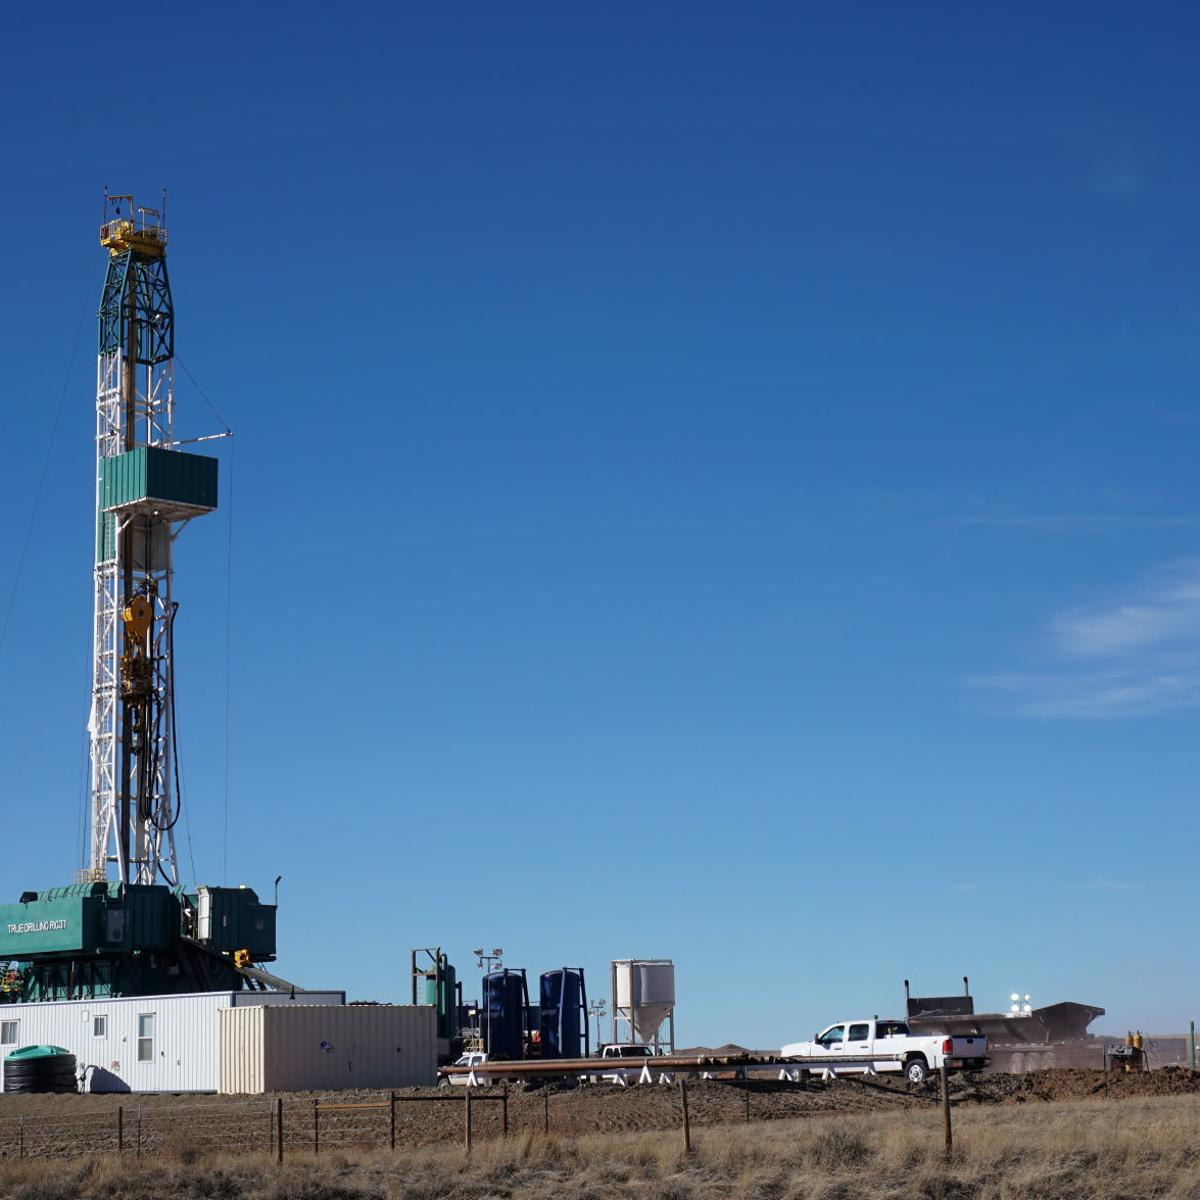 Yes, oil has improved, but what does that mean for Wyoming